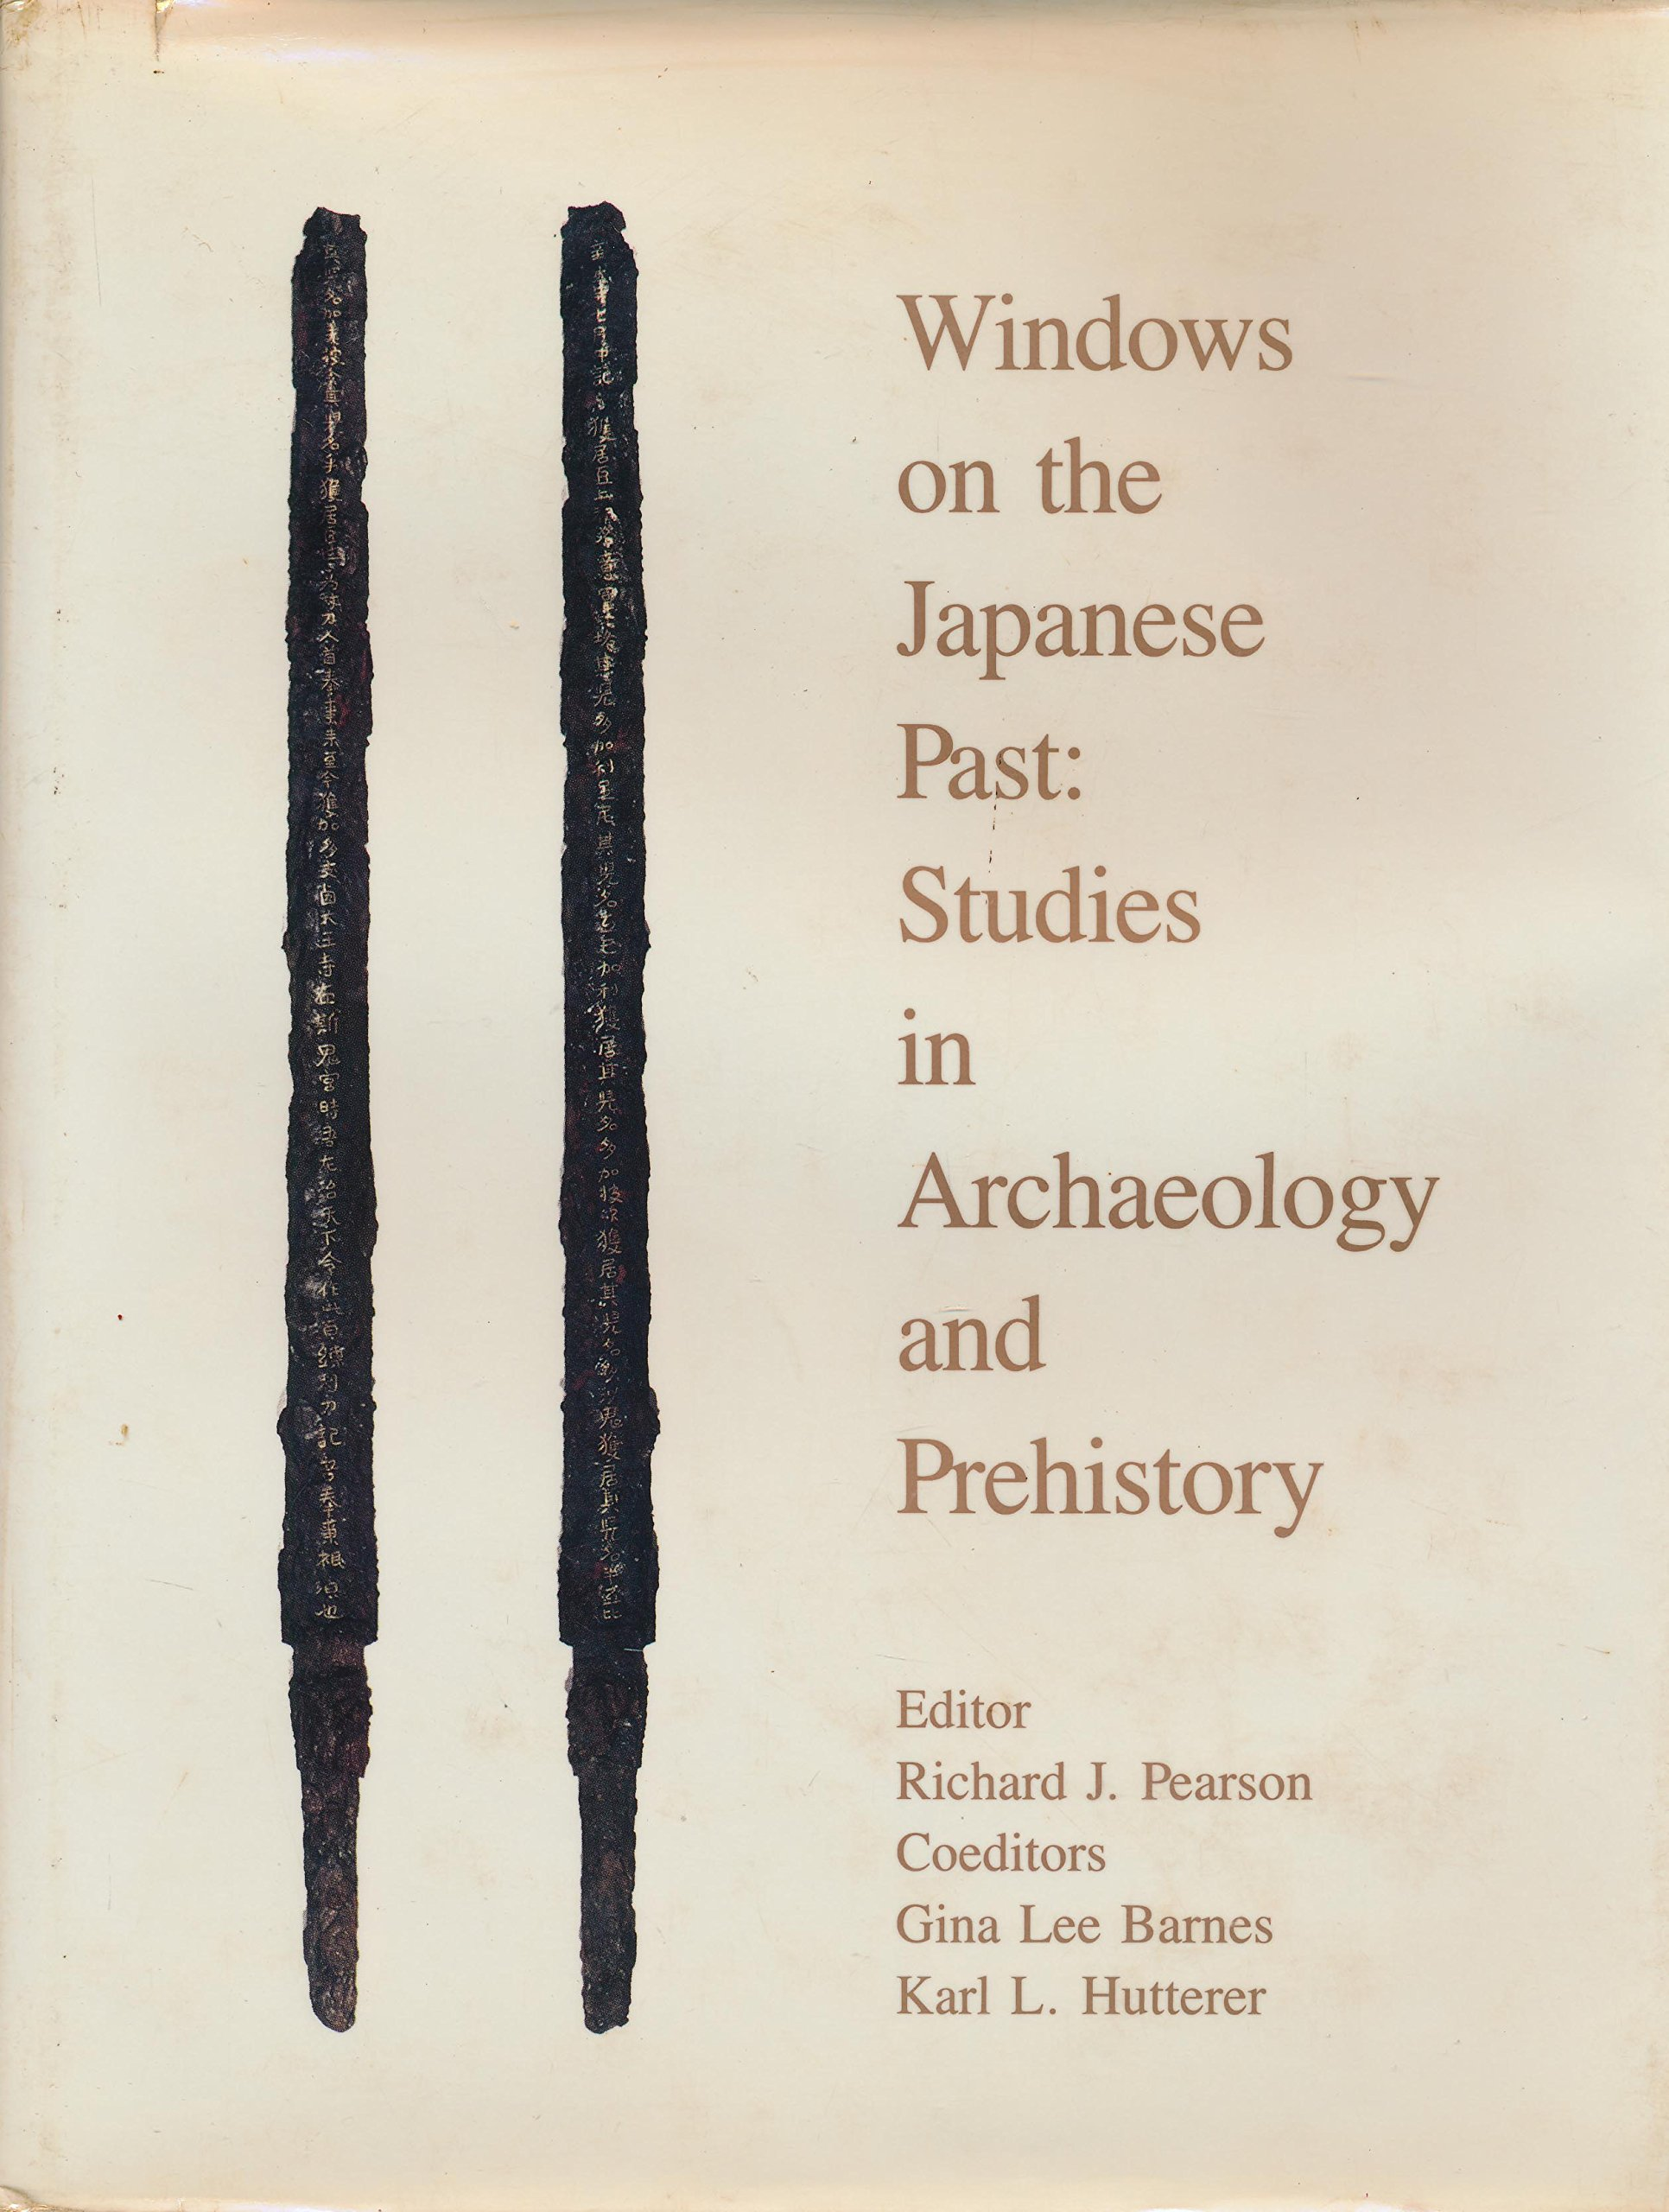 Windows on the Japanese Past: Studies in Archaeology and Prehistory